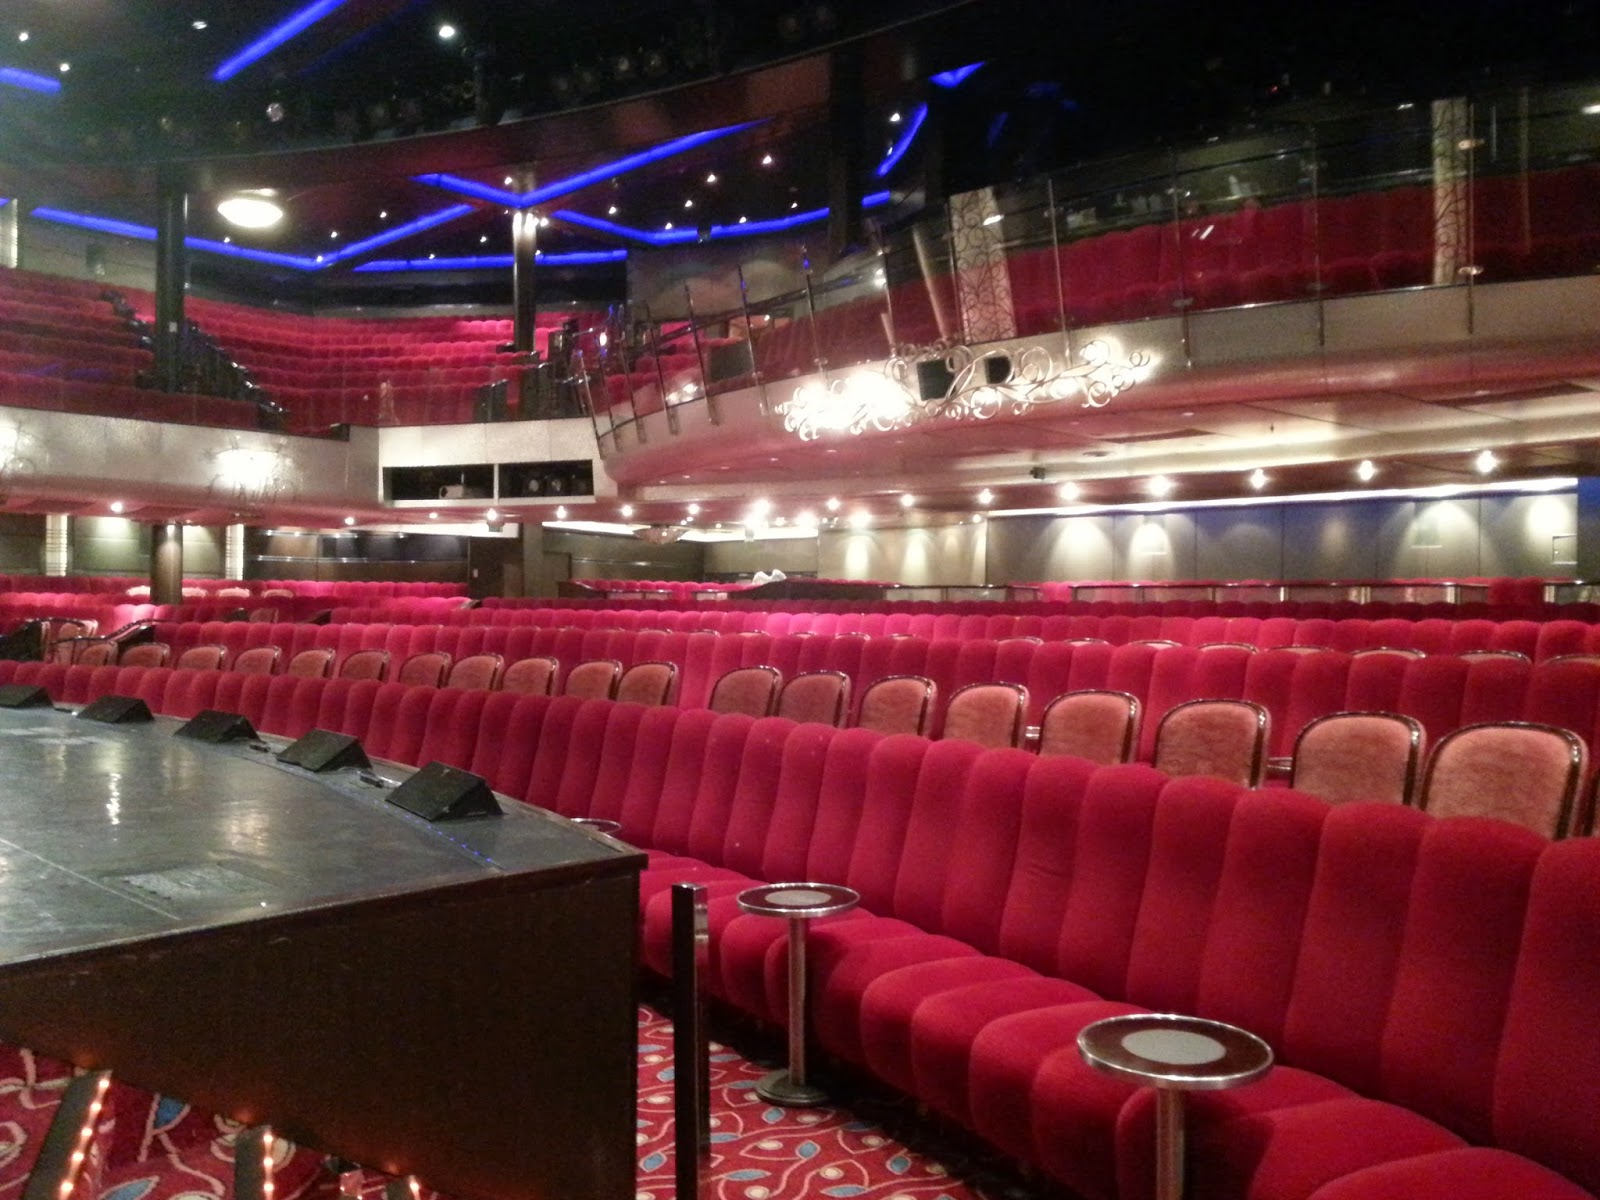 Queen Mary 2 (QM2) - Royal Court Theatre